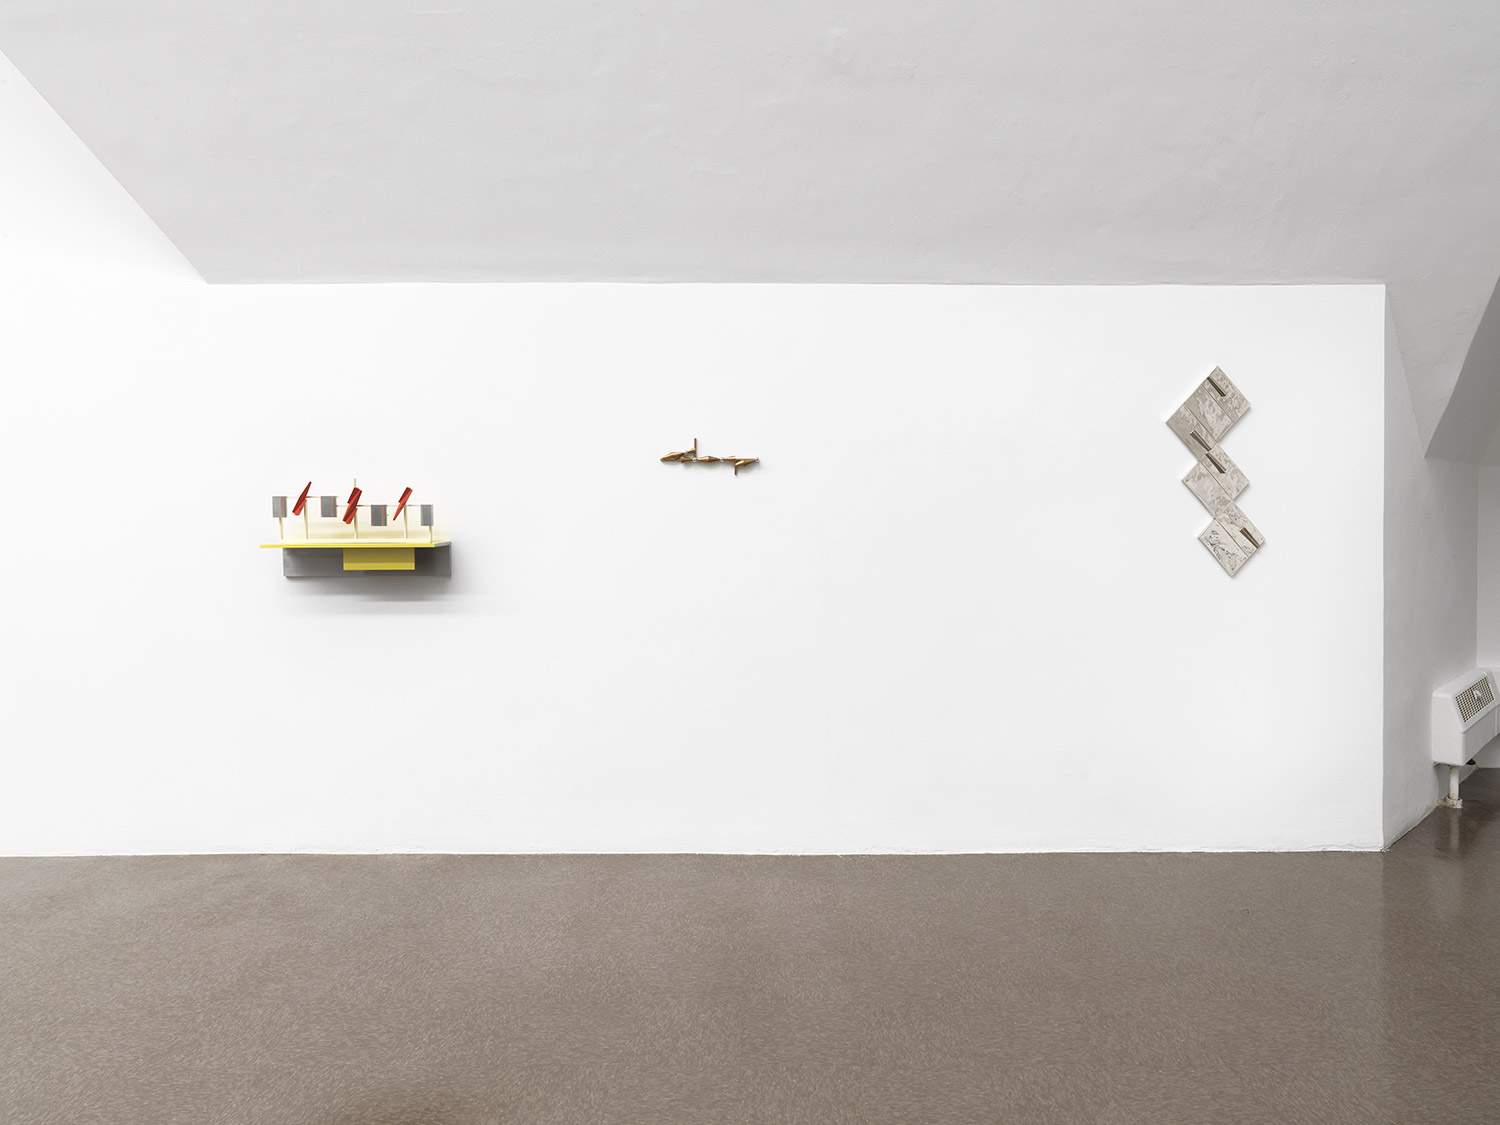 Three small sculptures on a wall, each featuring yellow or silver